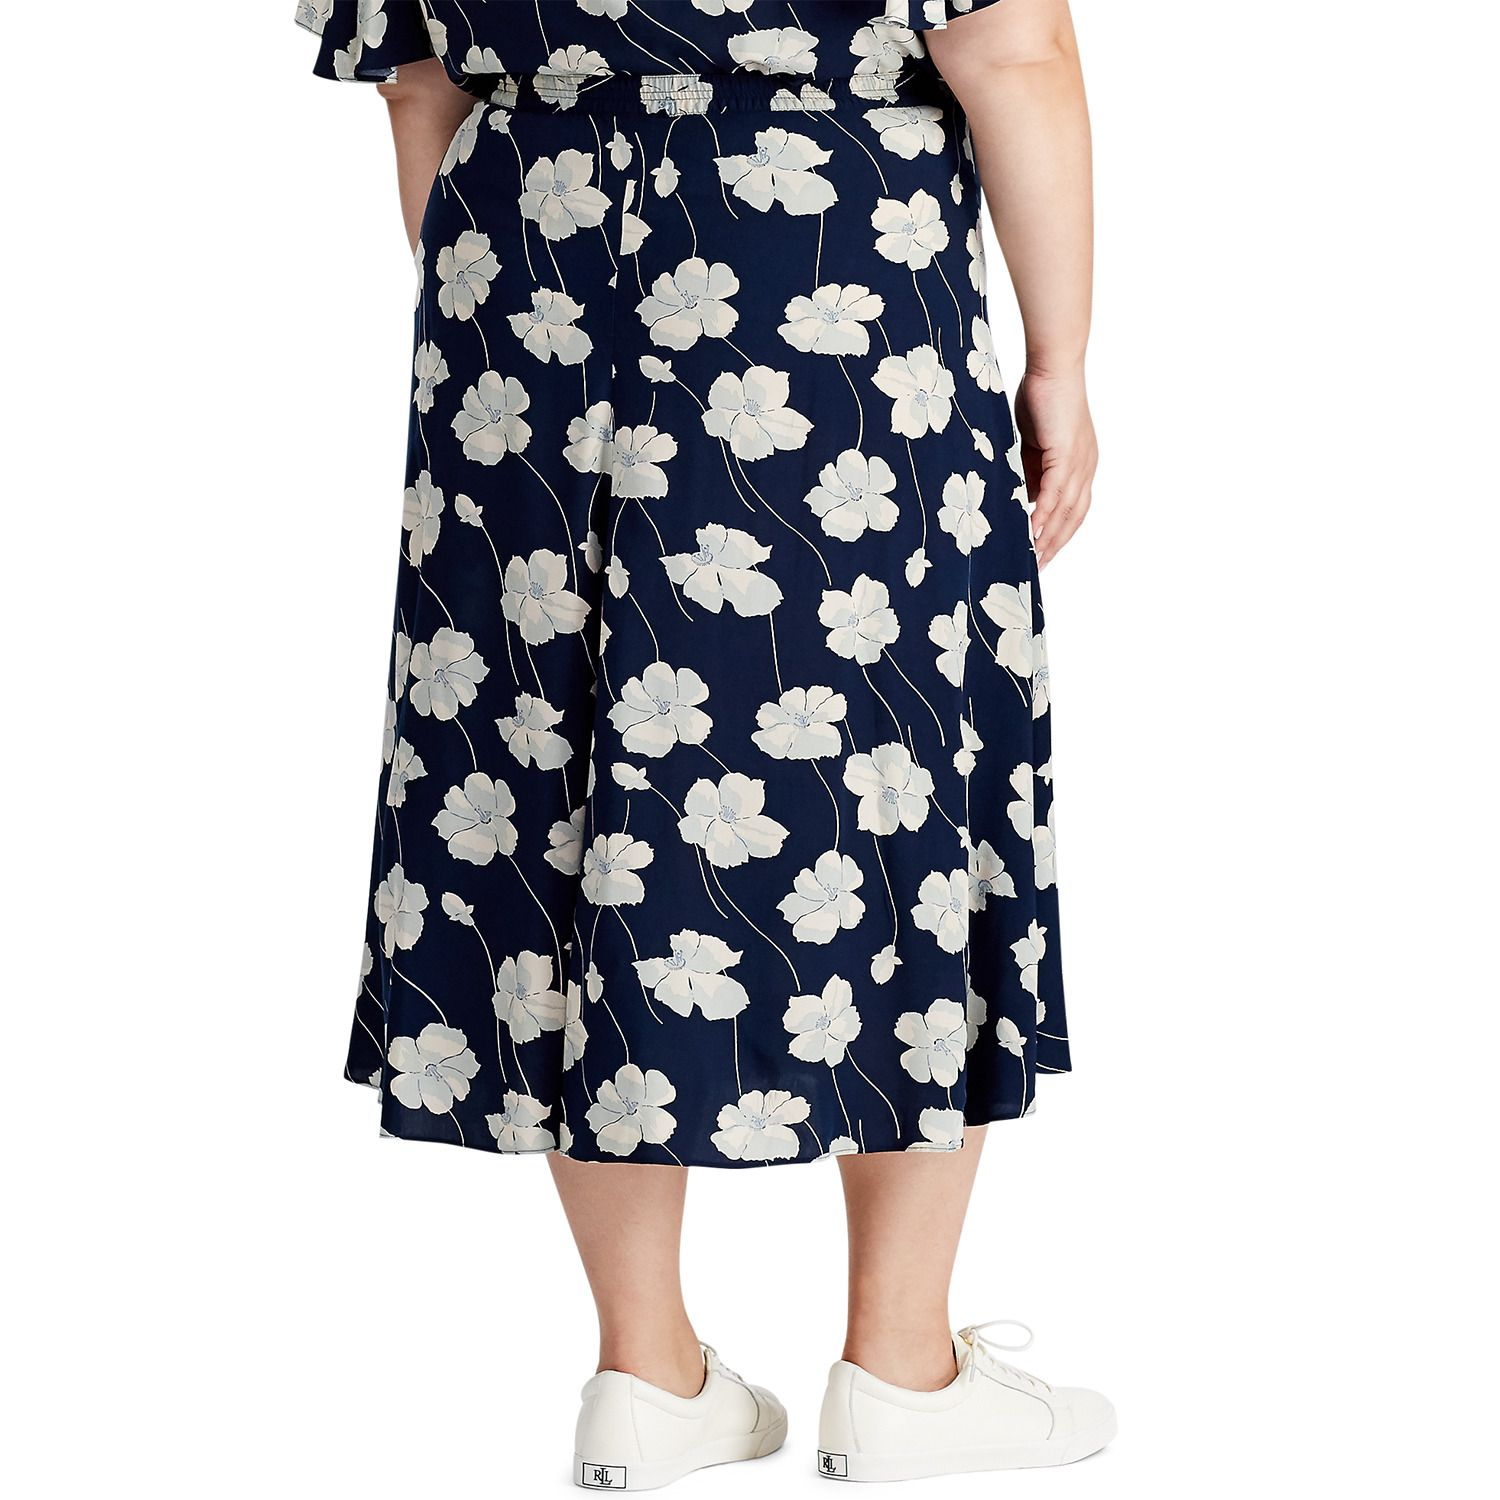 Plus Size Chaps Printed Skirt